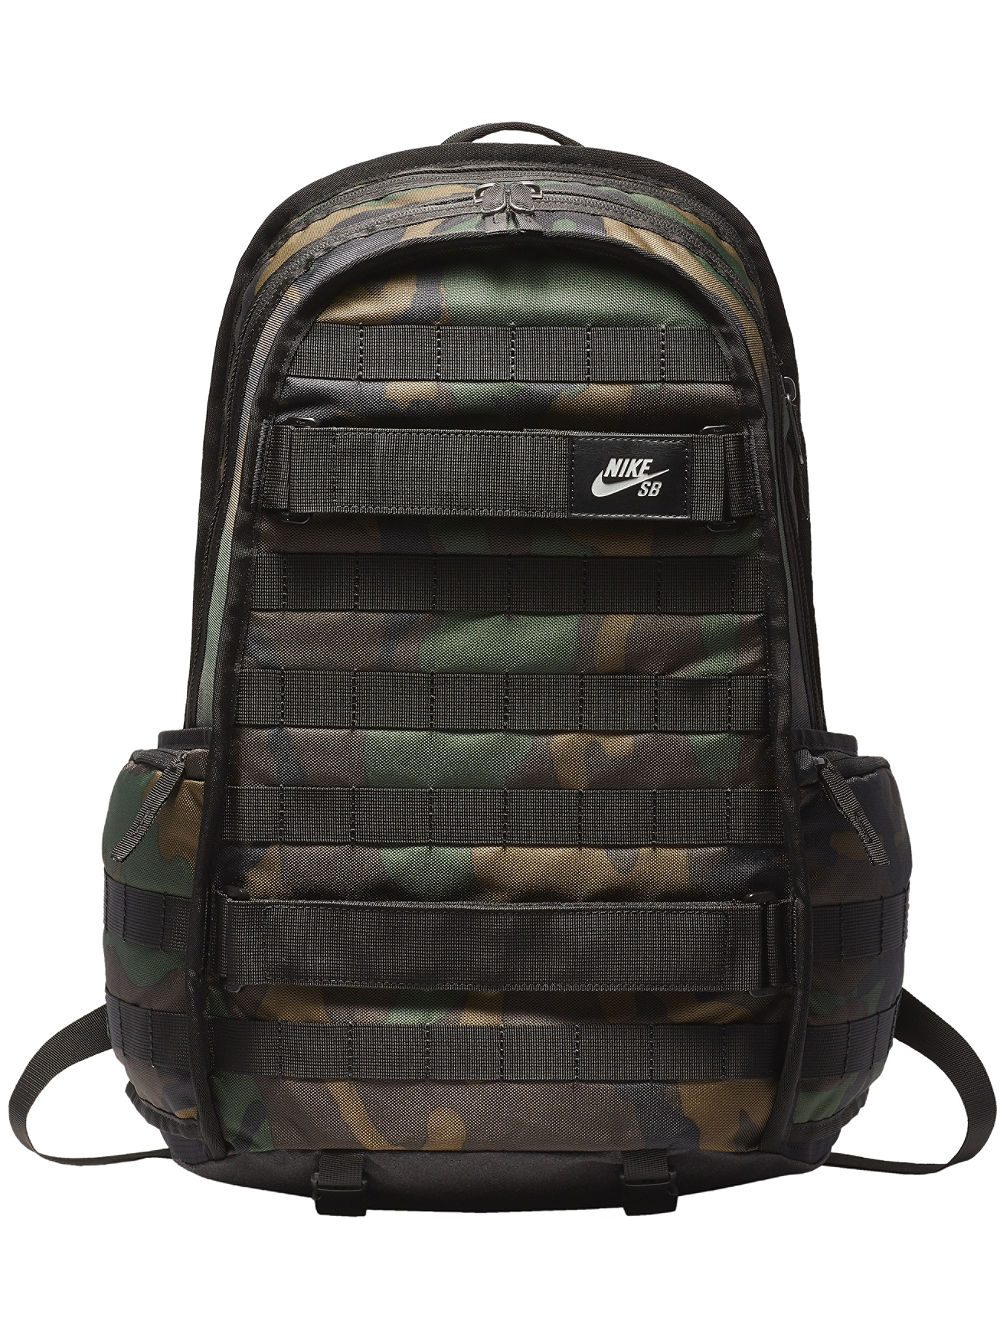 RPM Graphic Skateboarding Backpack